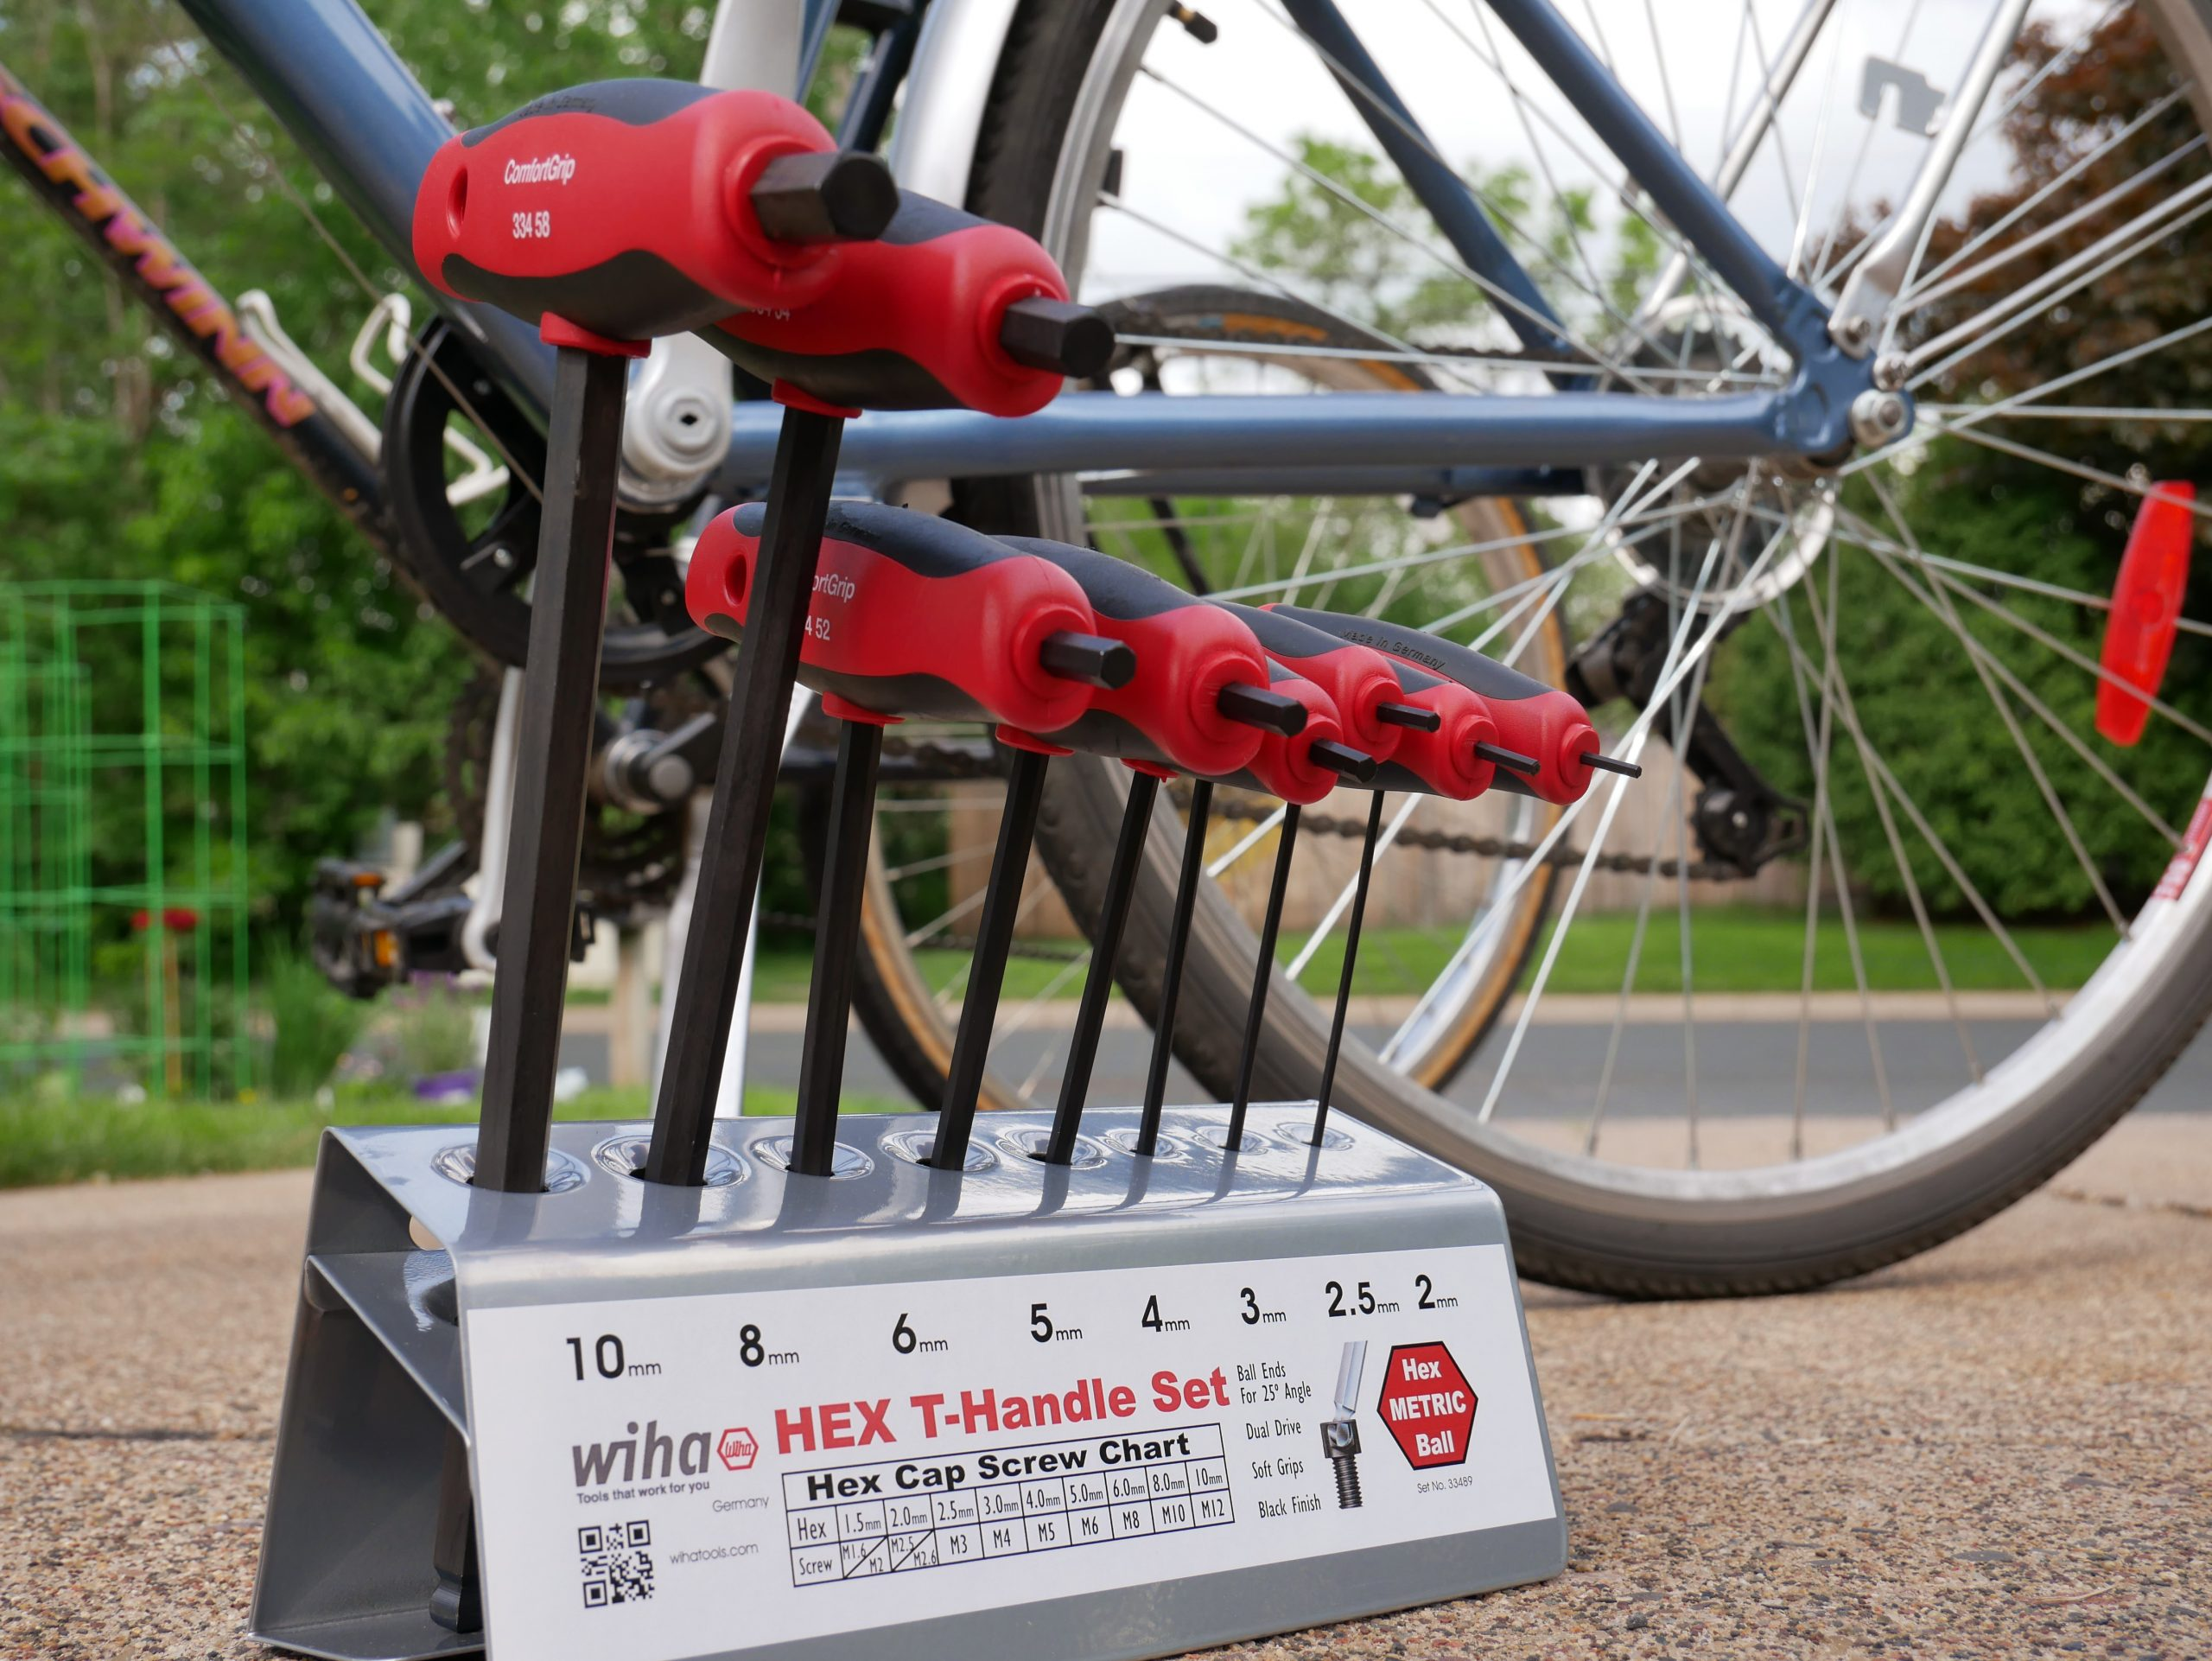 Hex Keys in Stand with Bicycle